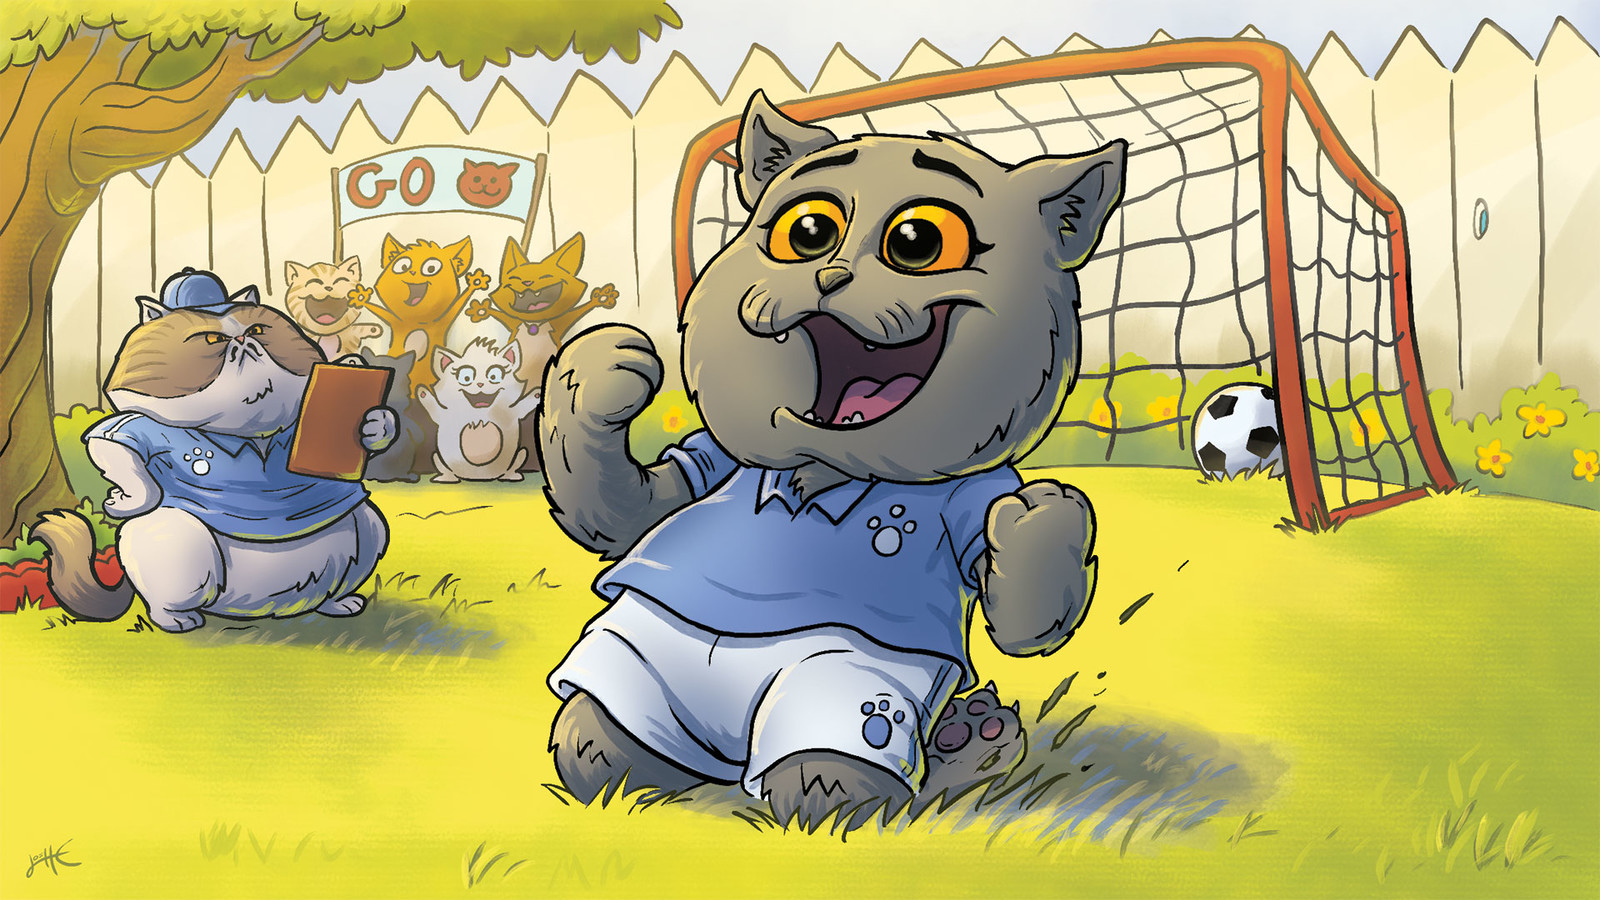 Fun drawing for Aaron's Animals' soccer themed video.